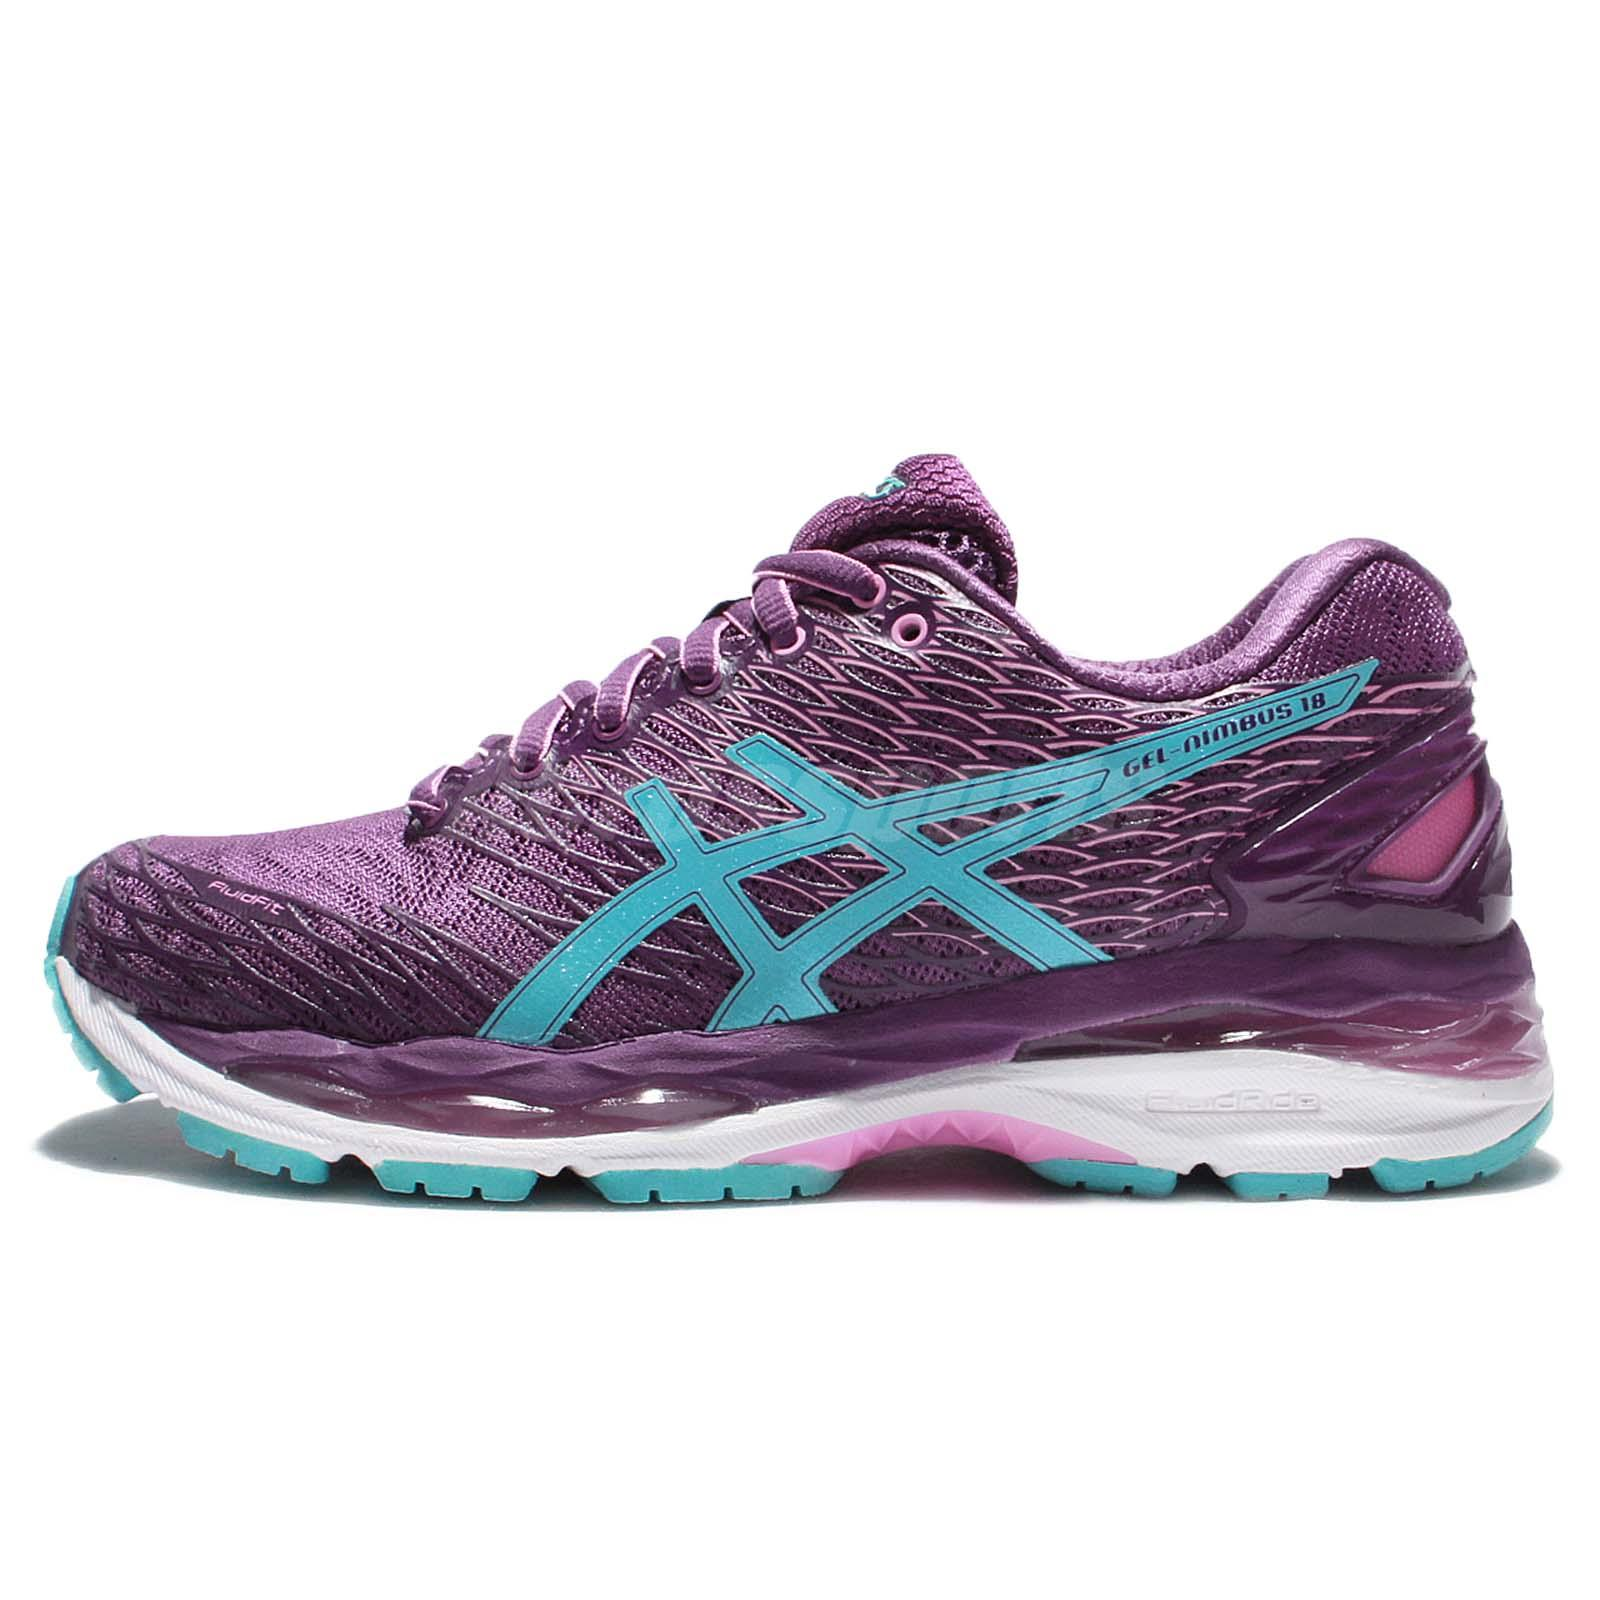 asics lady gel nimbus 18 wide purple blue womens running shoes tjg512 3340 ebay. Black Bedroom Furniture Sets. Home Design Ideas